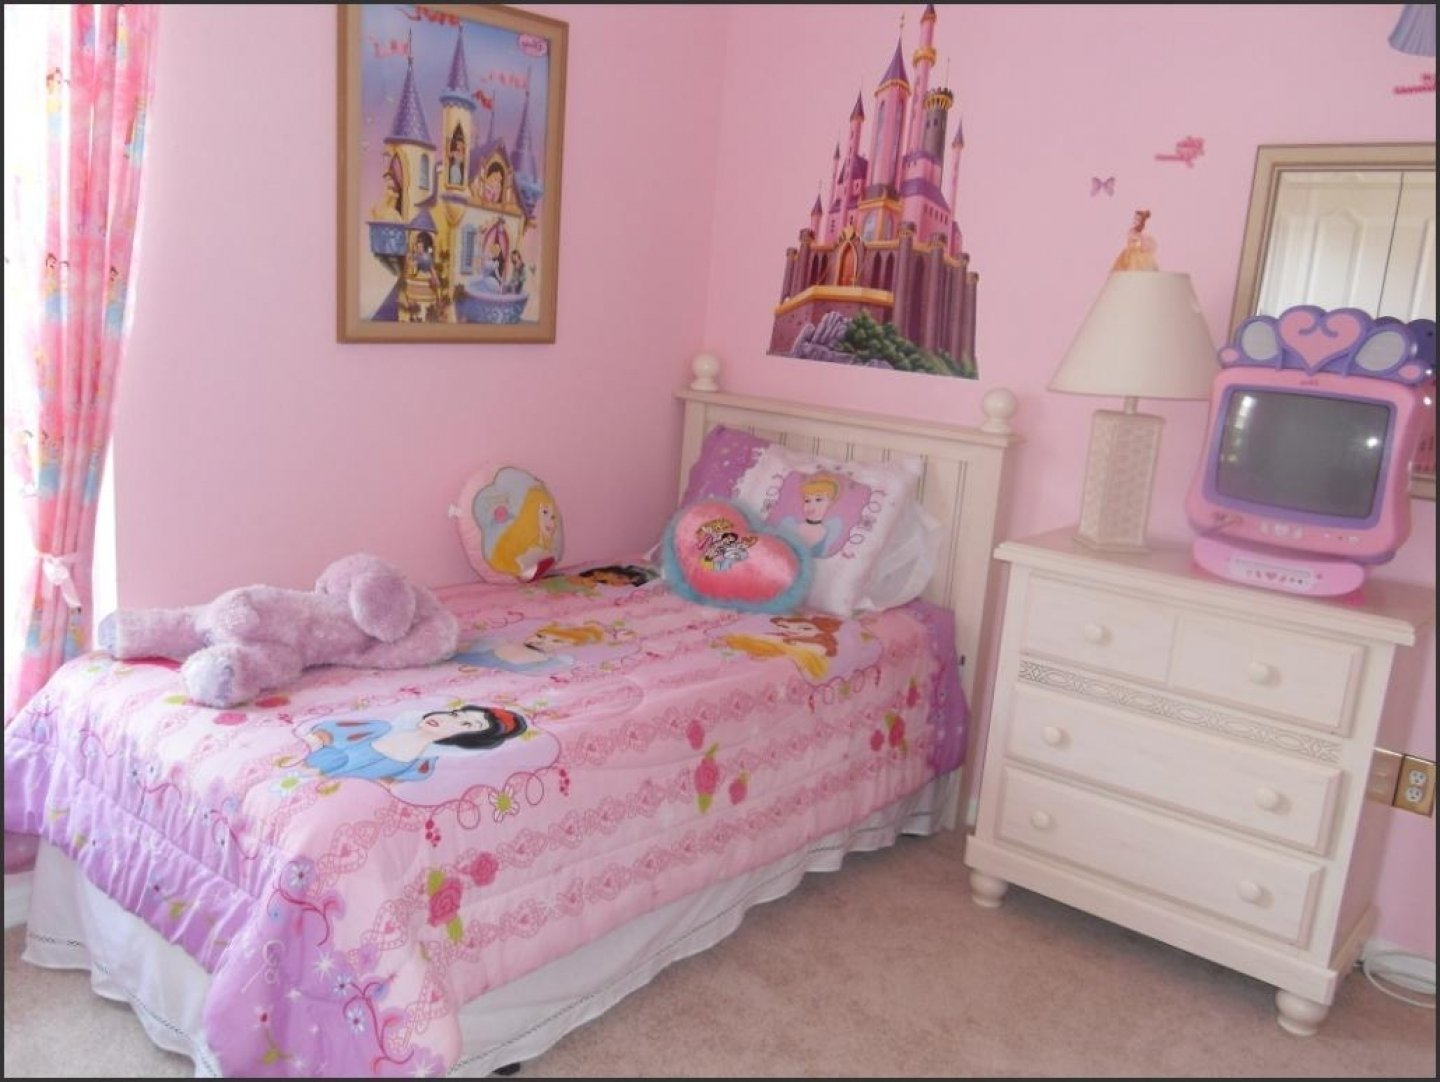 10 Fashionable Ideas For Little Girls Bedroom little girl bedrooms designs bedrooms teenage girl bedroom ideas for 2021